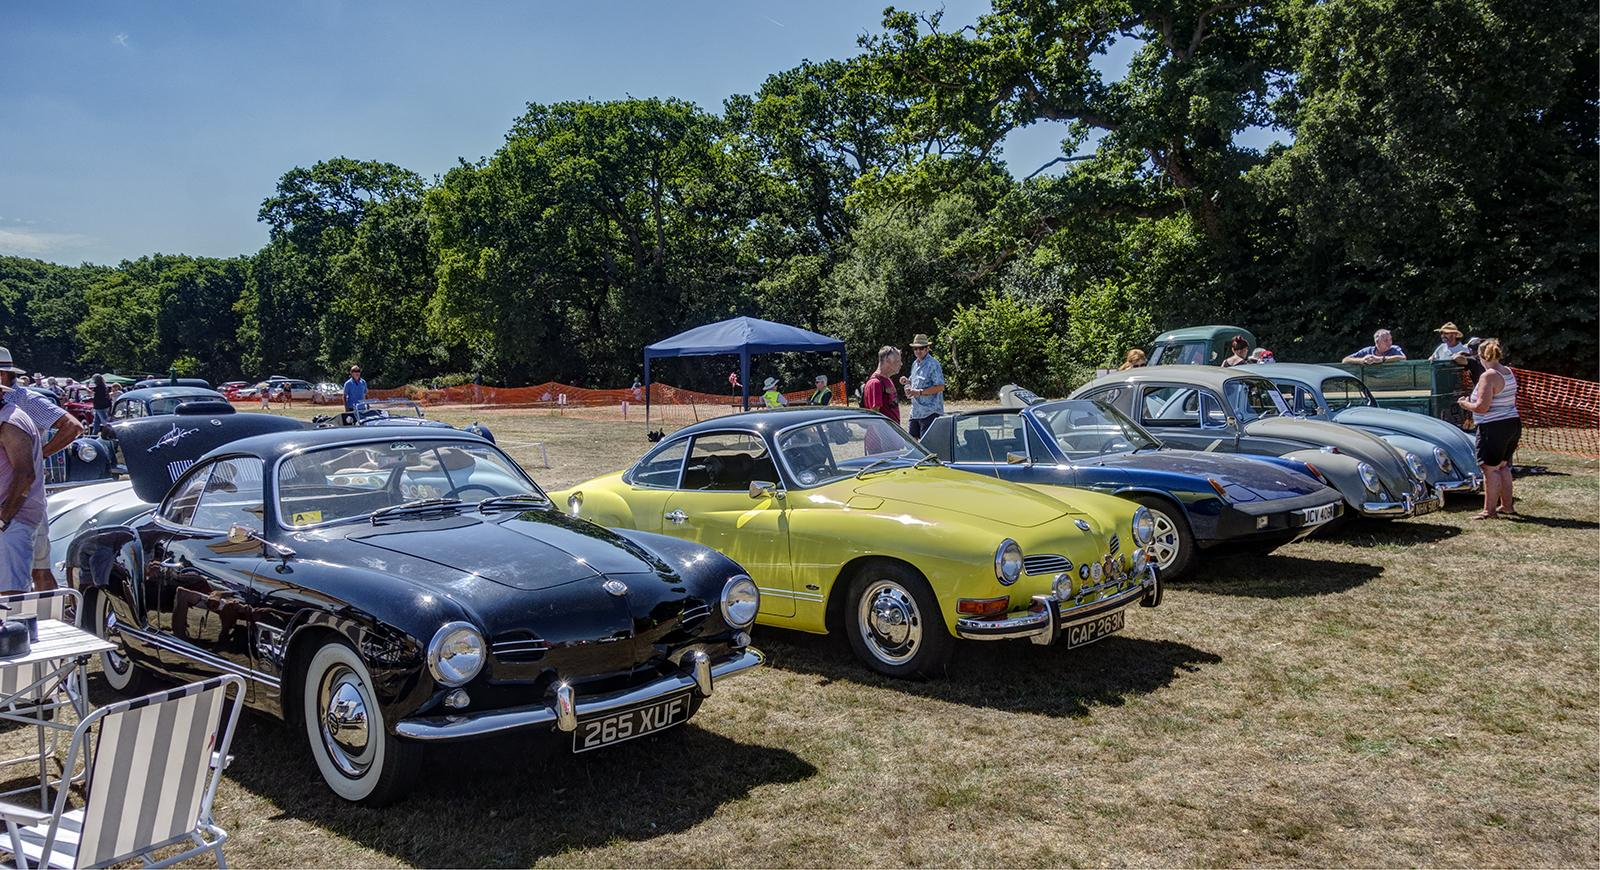 Classic Car Show- Lymington Hampshire UK